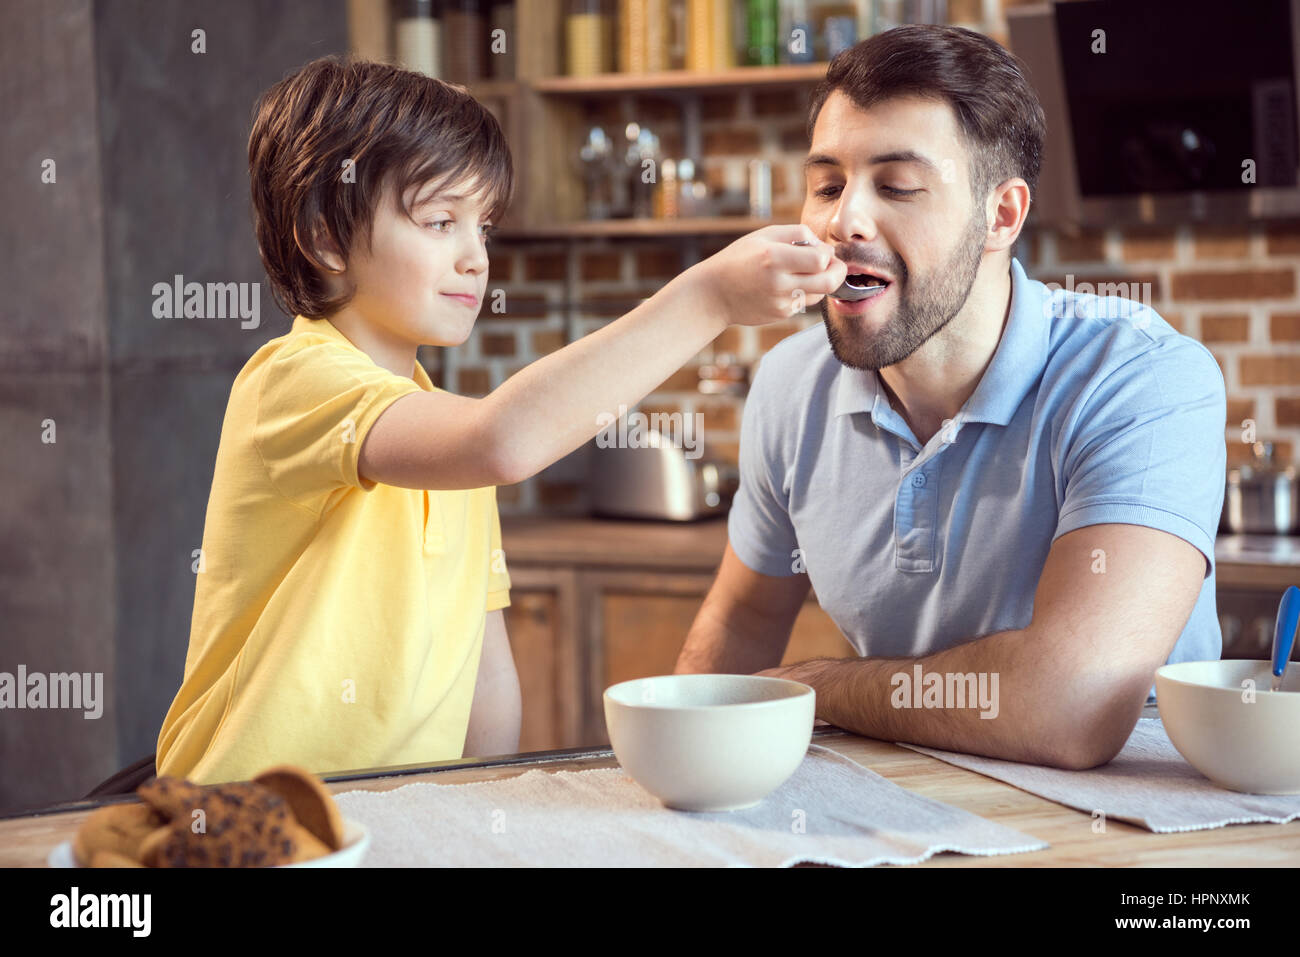 smiling boy feeding father with breakfast - Stock Image